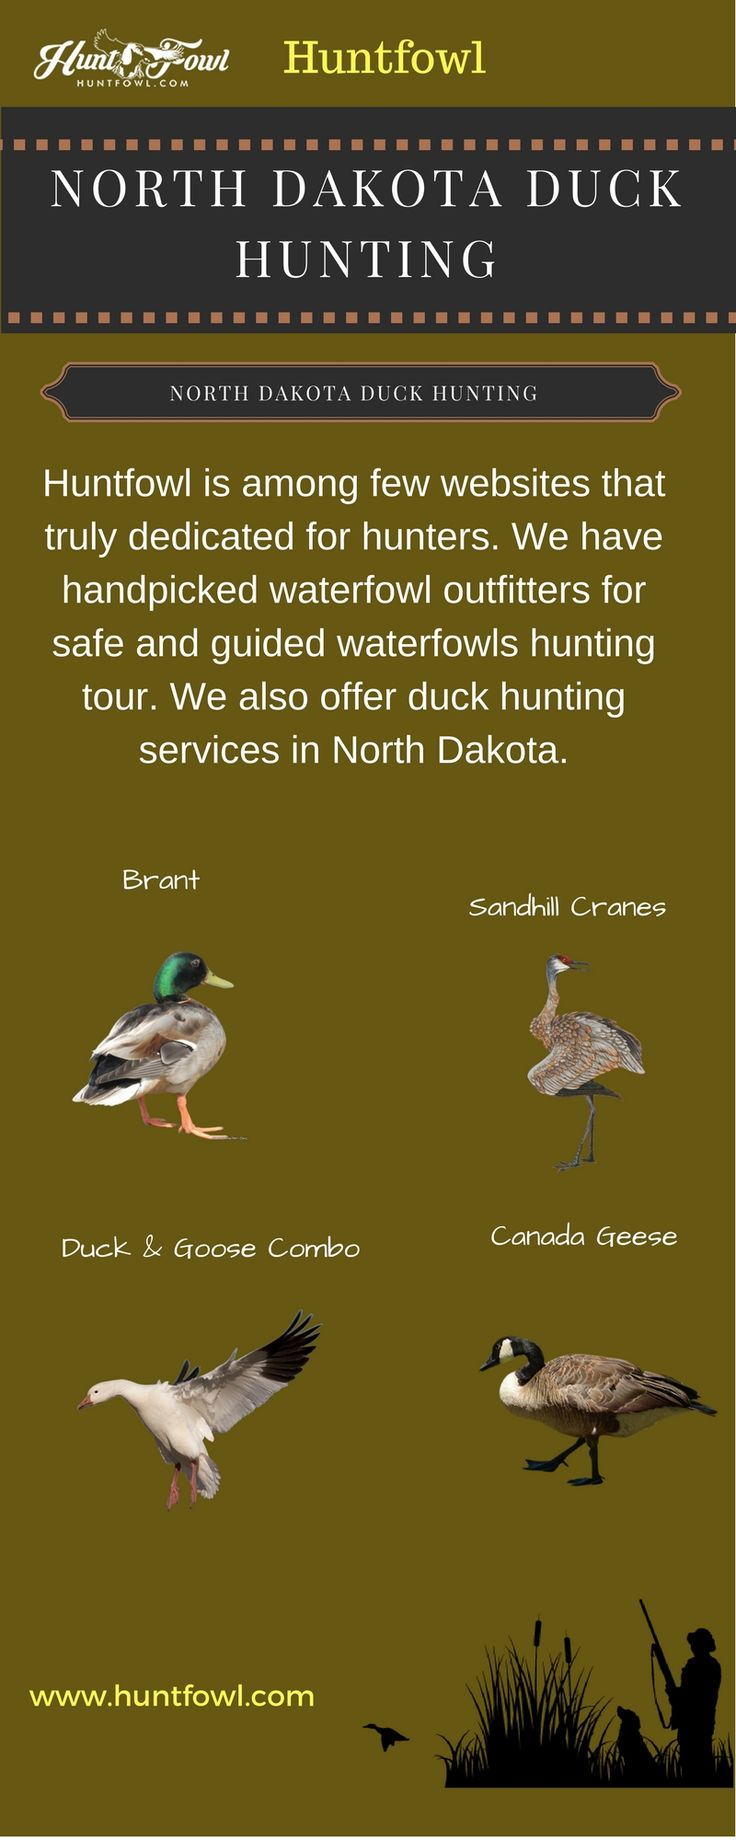 Duck hunting is a best activity for adventurous sporting.  Huntfowl.com is oldest directory for waterfowl hunting, outfitters and Guides.  The website provides safest duck hunting services in North Dakota.